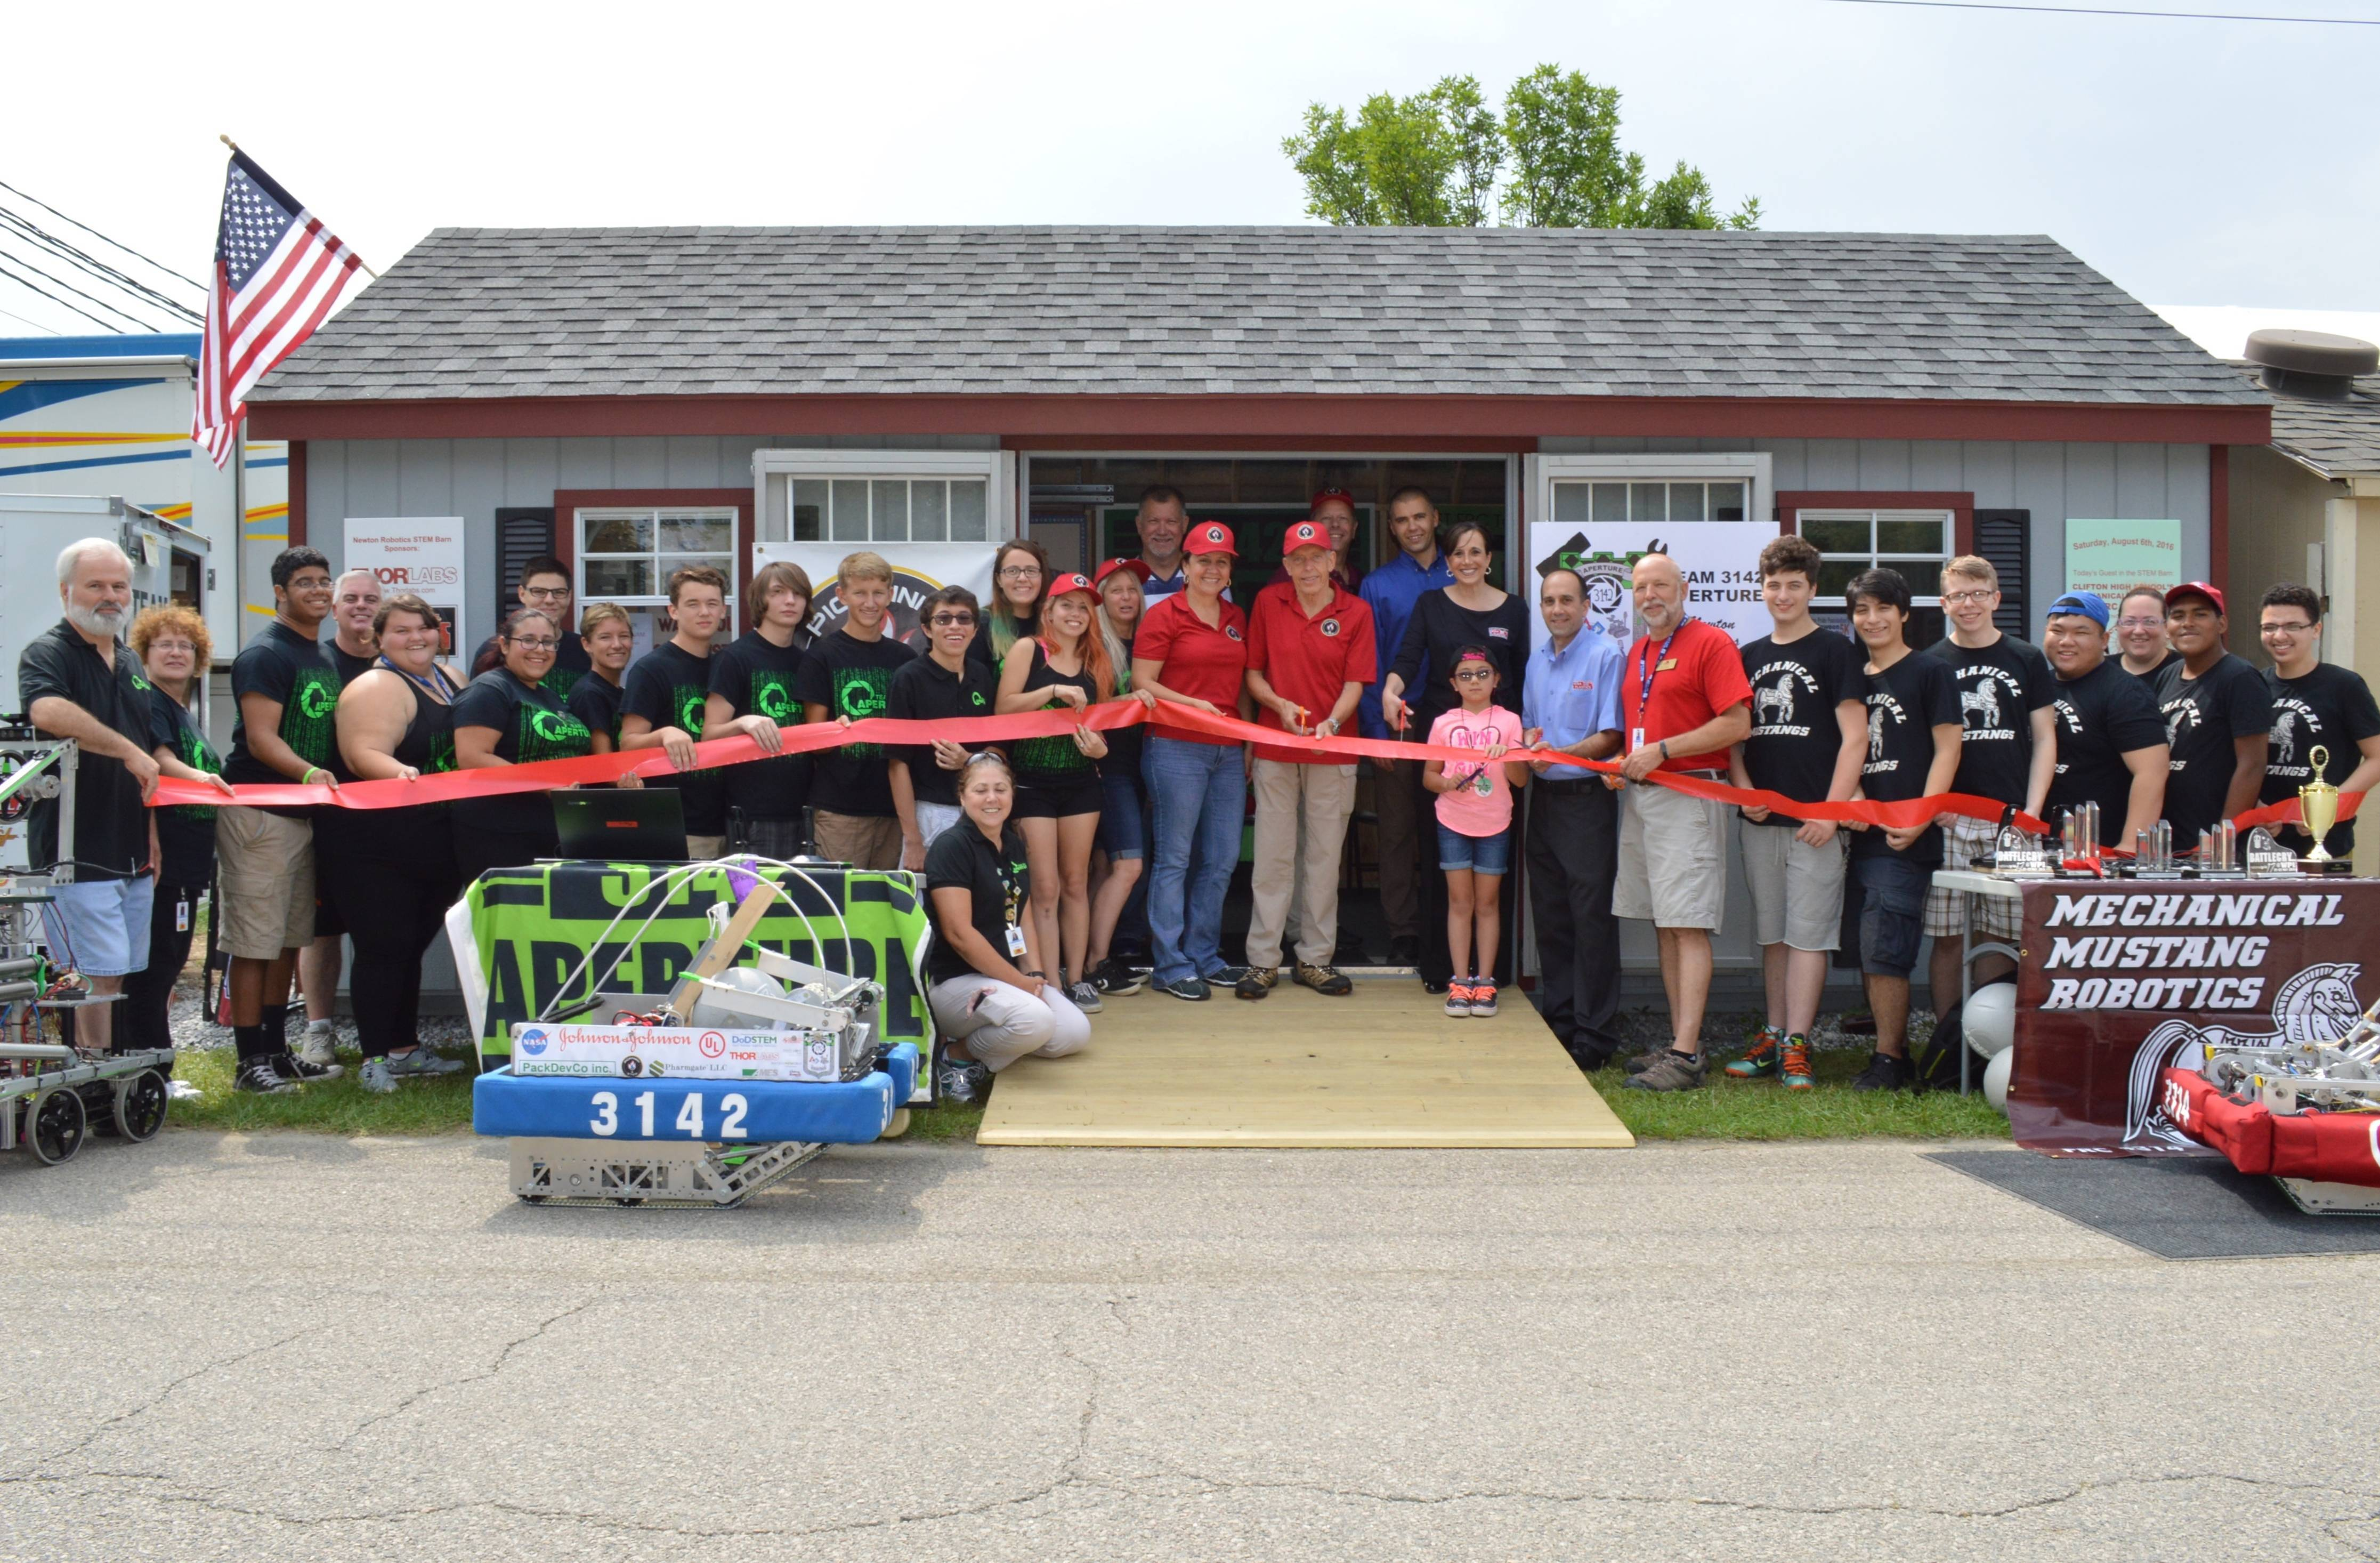 306526aebbfd2da2184a_2016_ribbon_cutting_at_Fair_day_2__1_.JPG